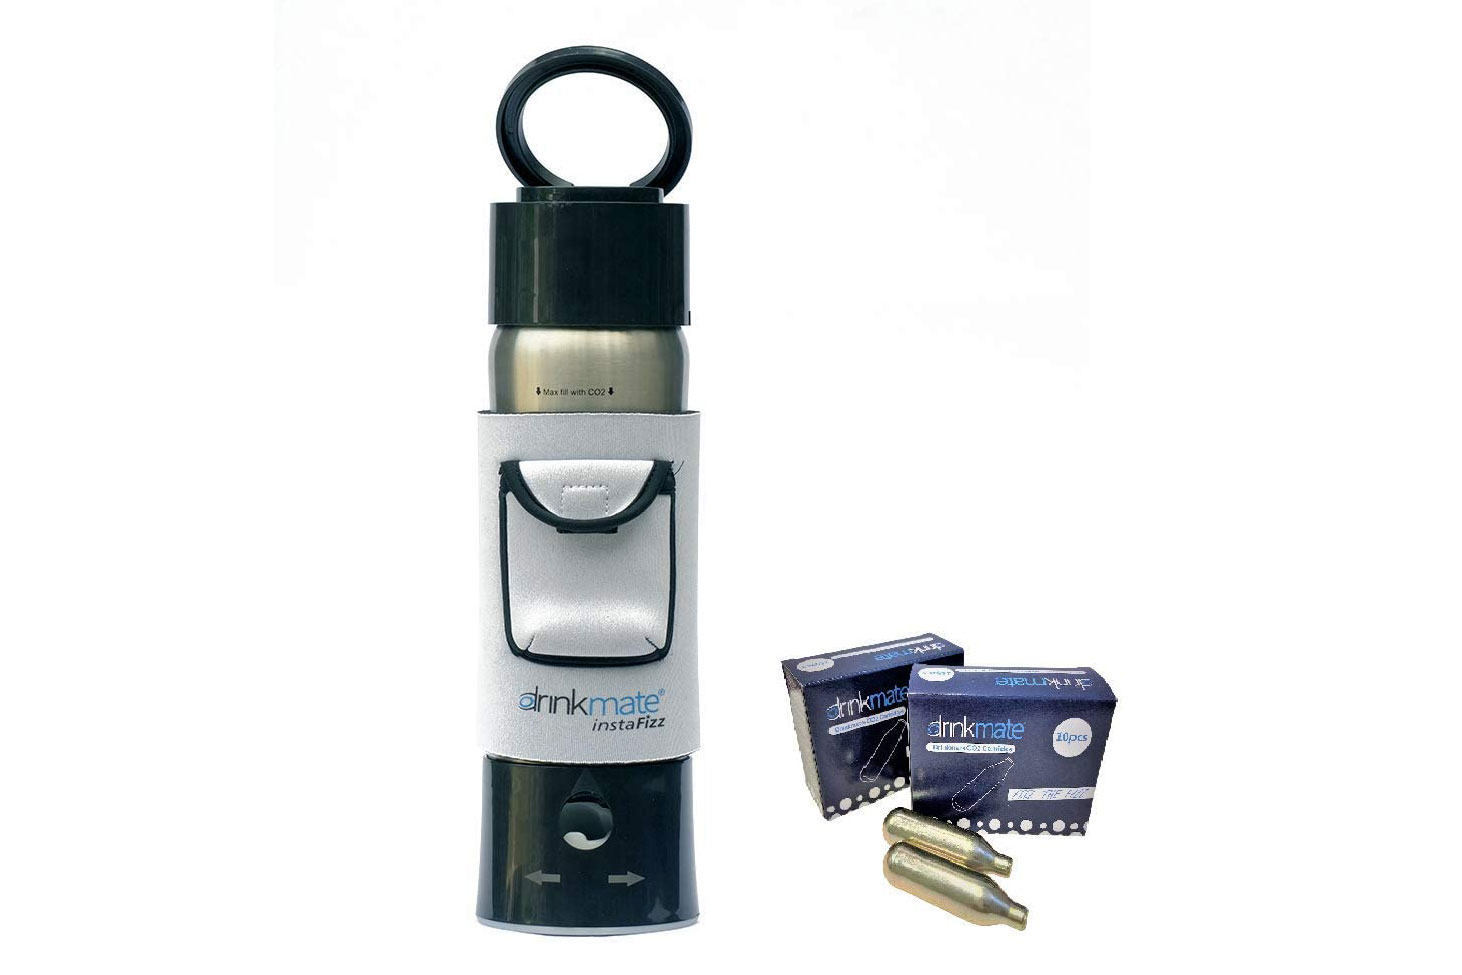 Drinkmate Handheld soda maker with silver sleeve and refill cartridge